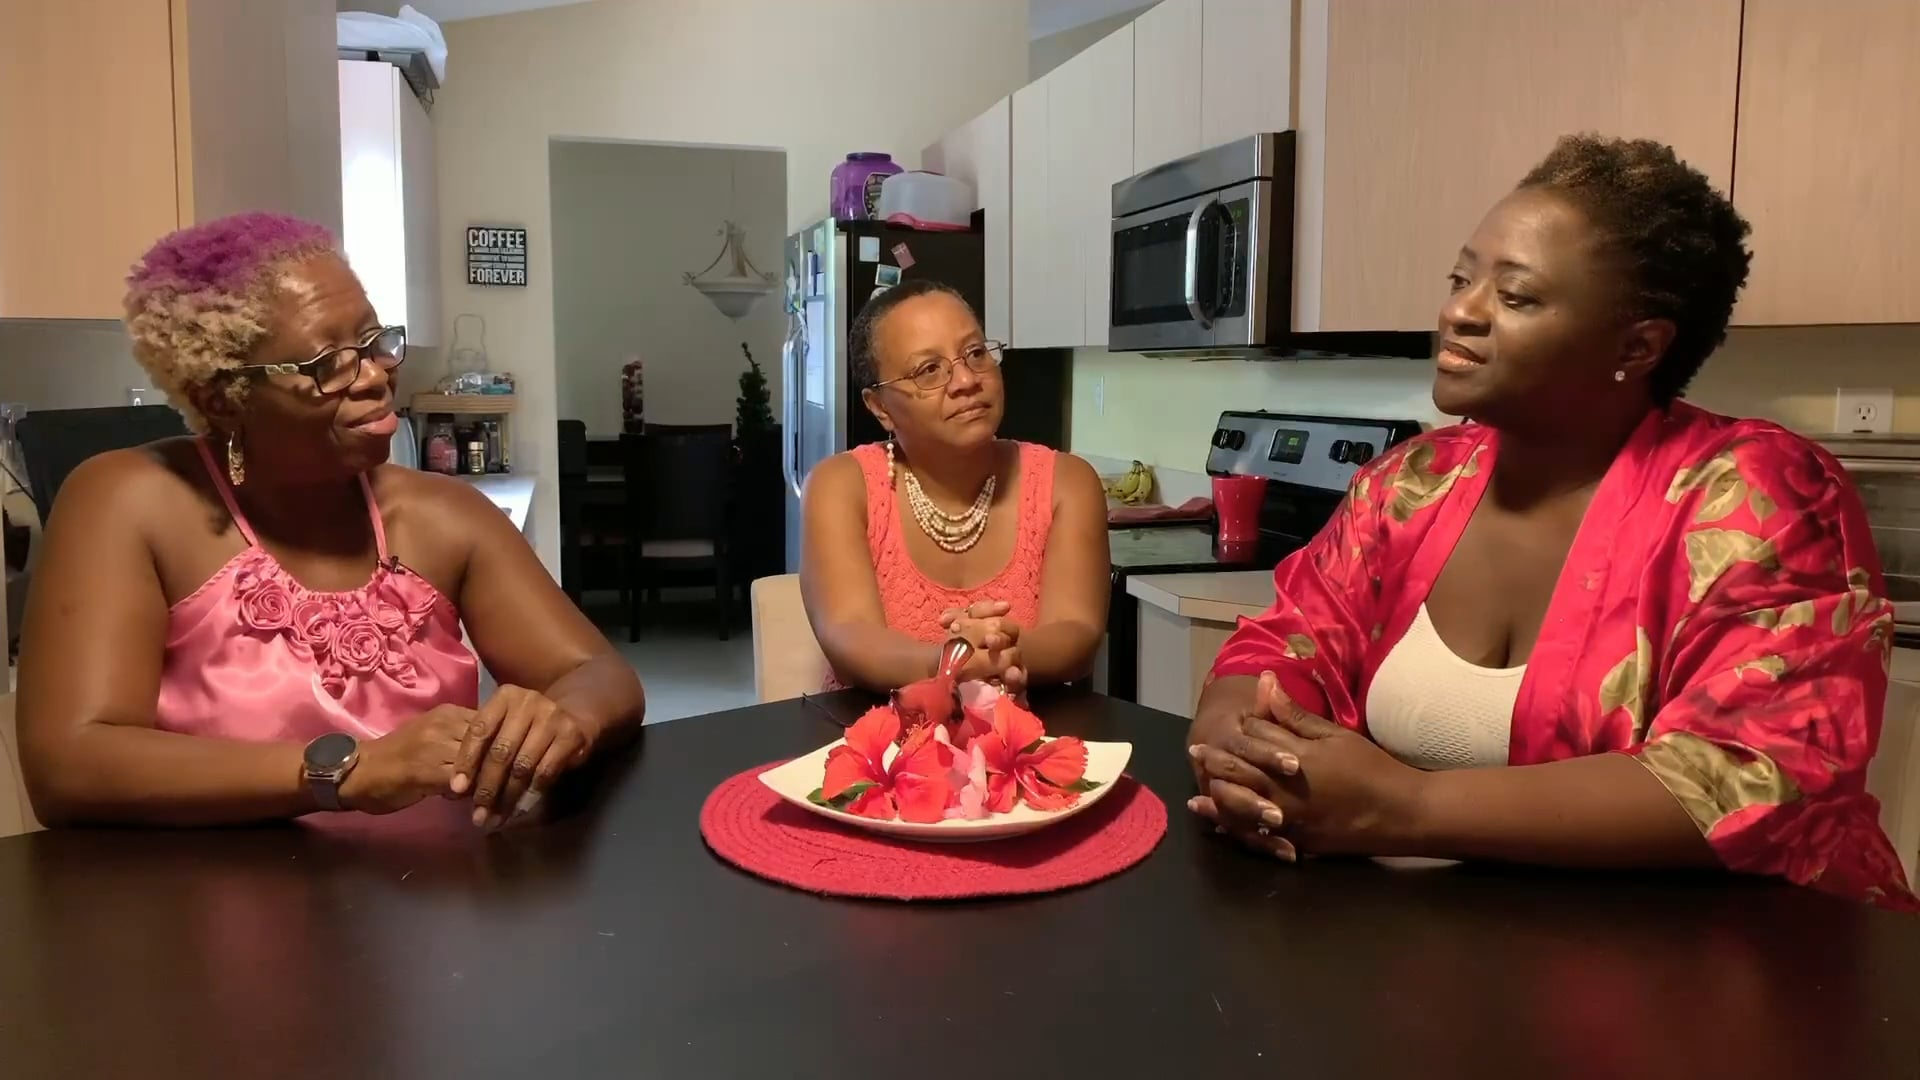 Woman to Woman: Domestic Abuse